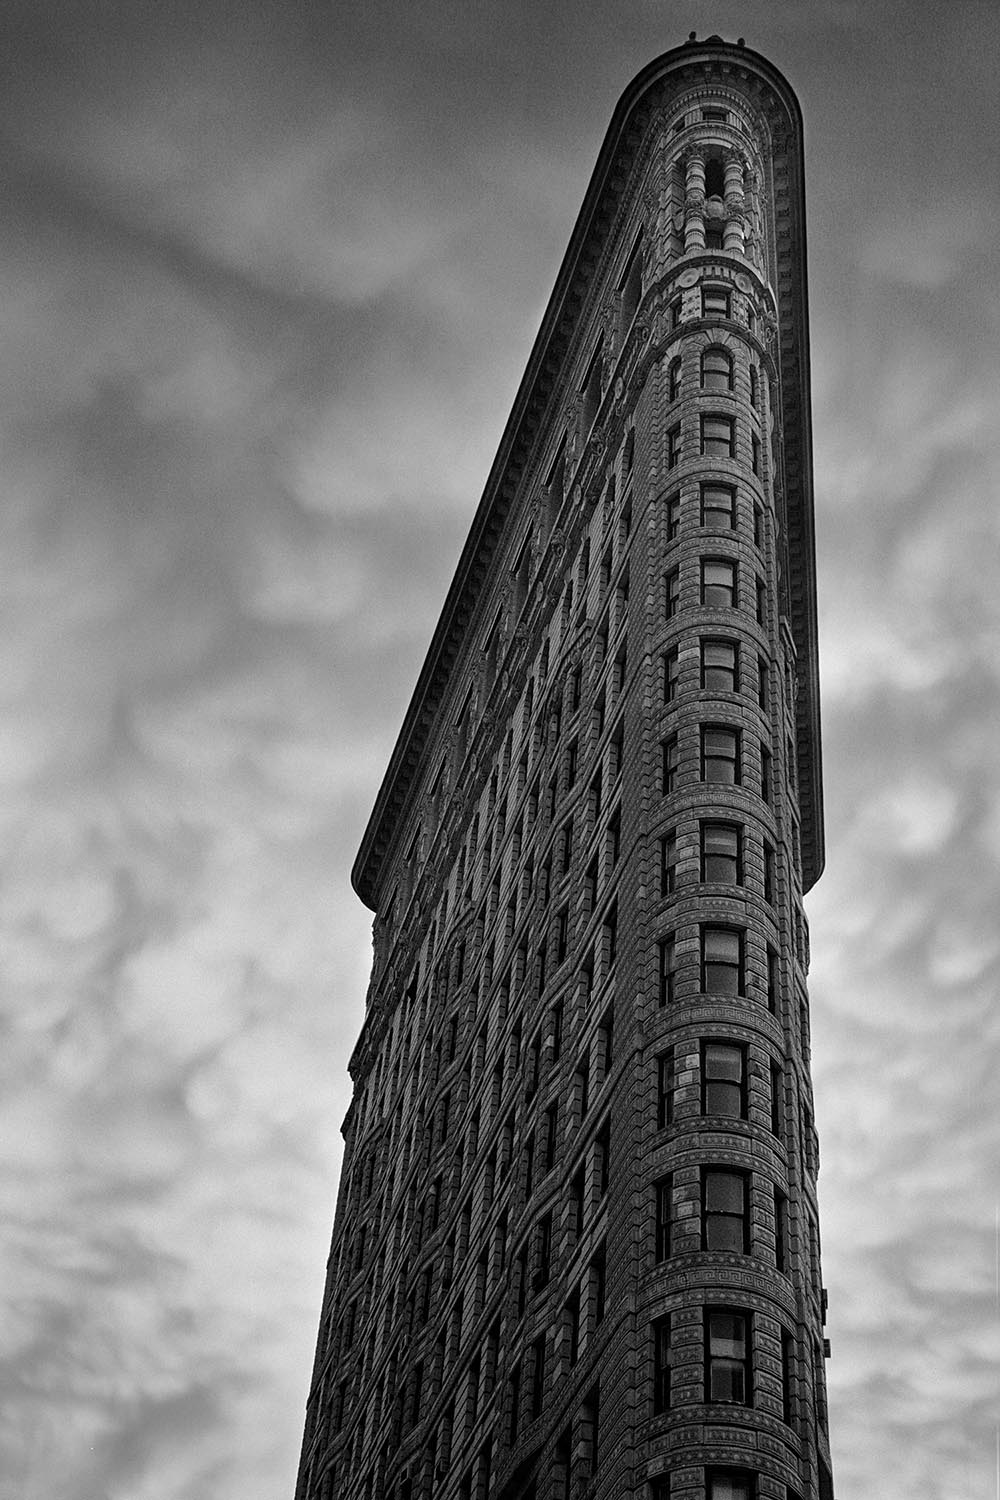 Black and white photograph of mammatus clouds behind the Flatiron Building.